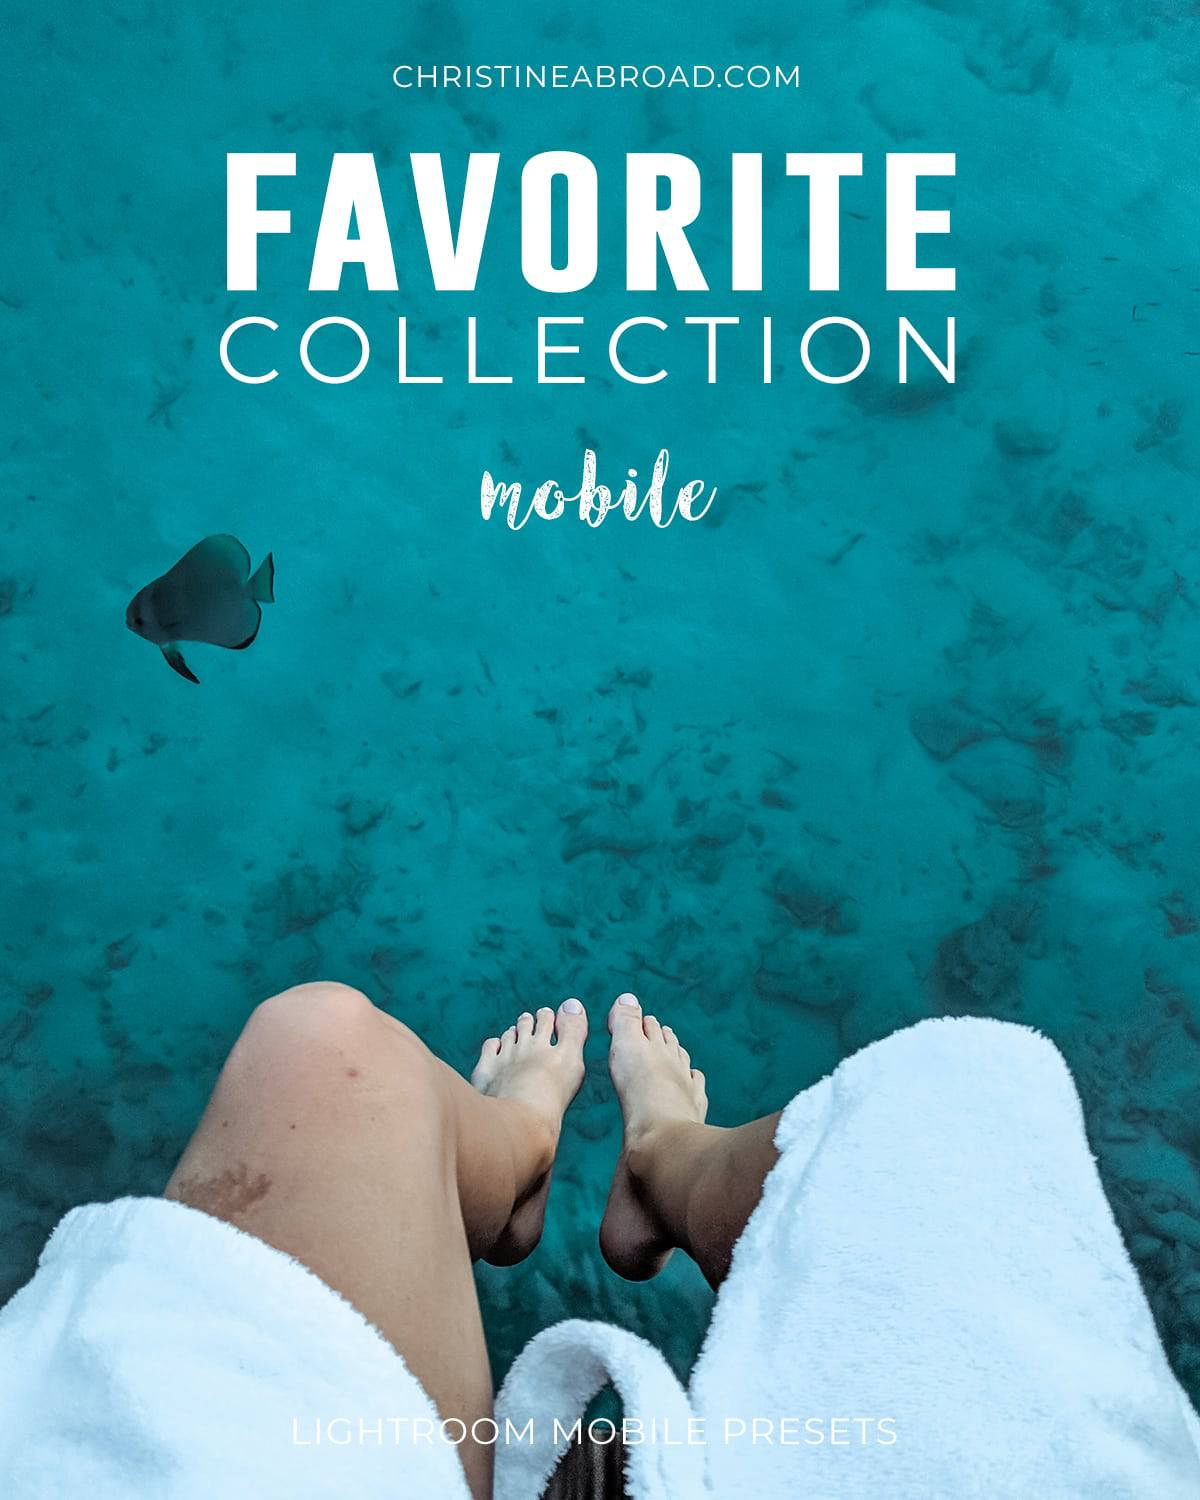 Favorite Collection Mobile - Christine Abroad